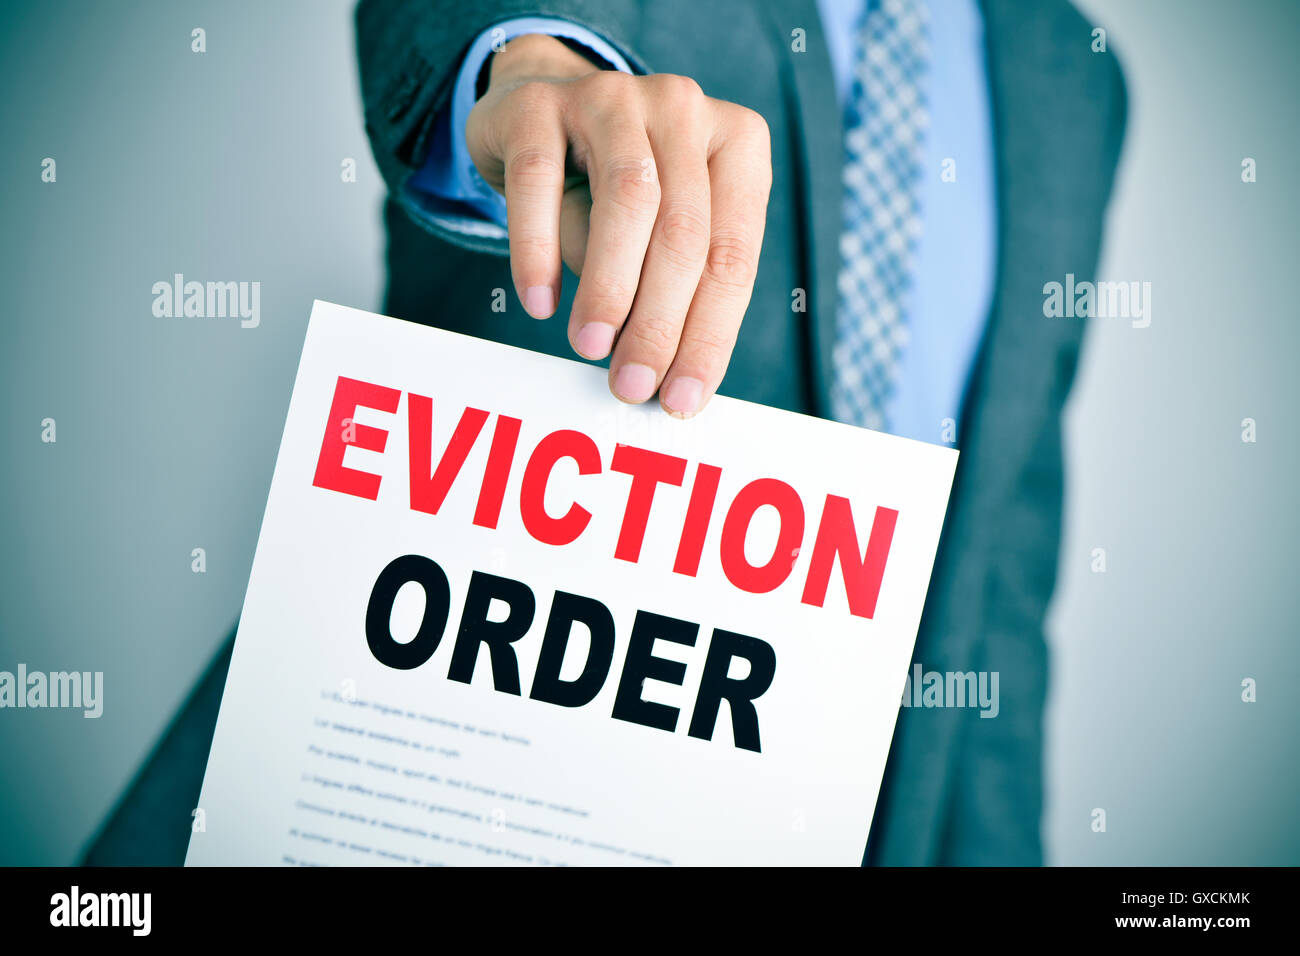 a young caucasian man wearing a gray suit shows a document with the text eviction order - Stock Image